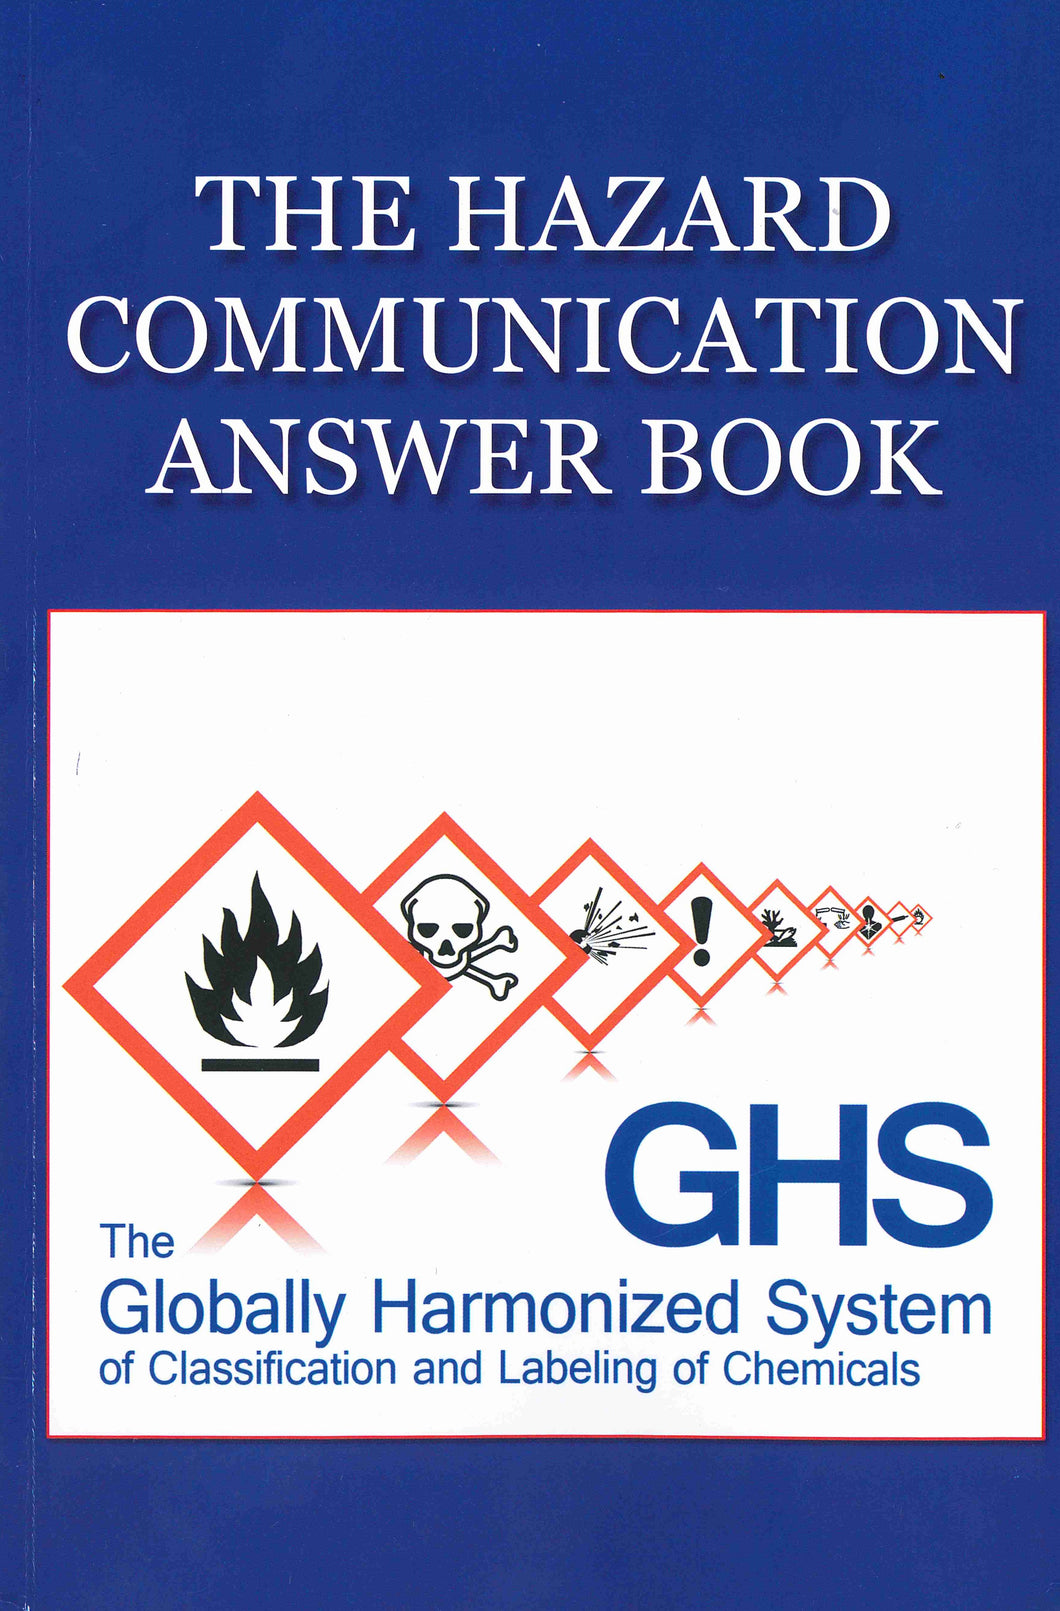 The Hazard Communication Answer Book by Mark Moran